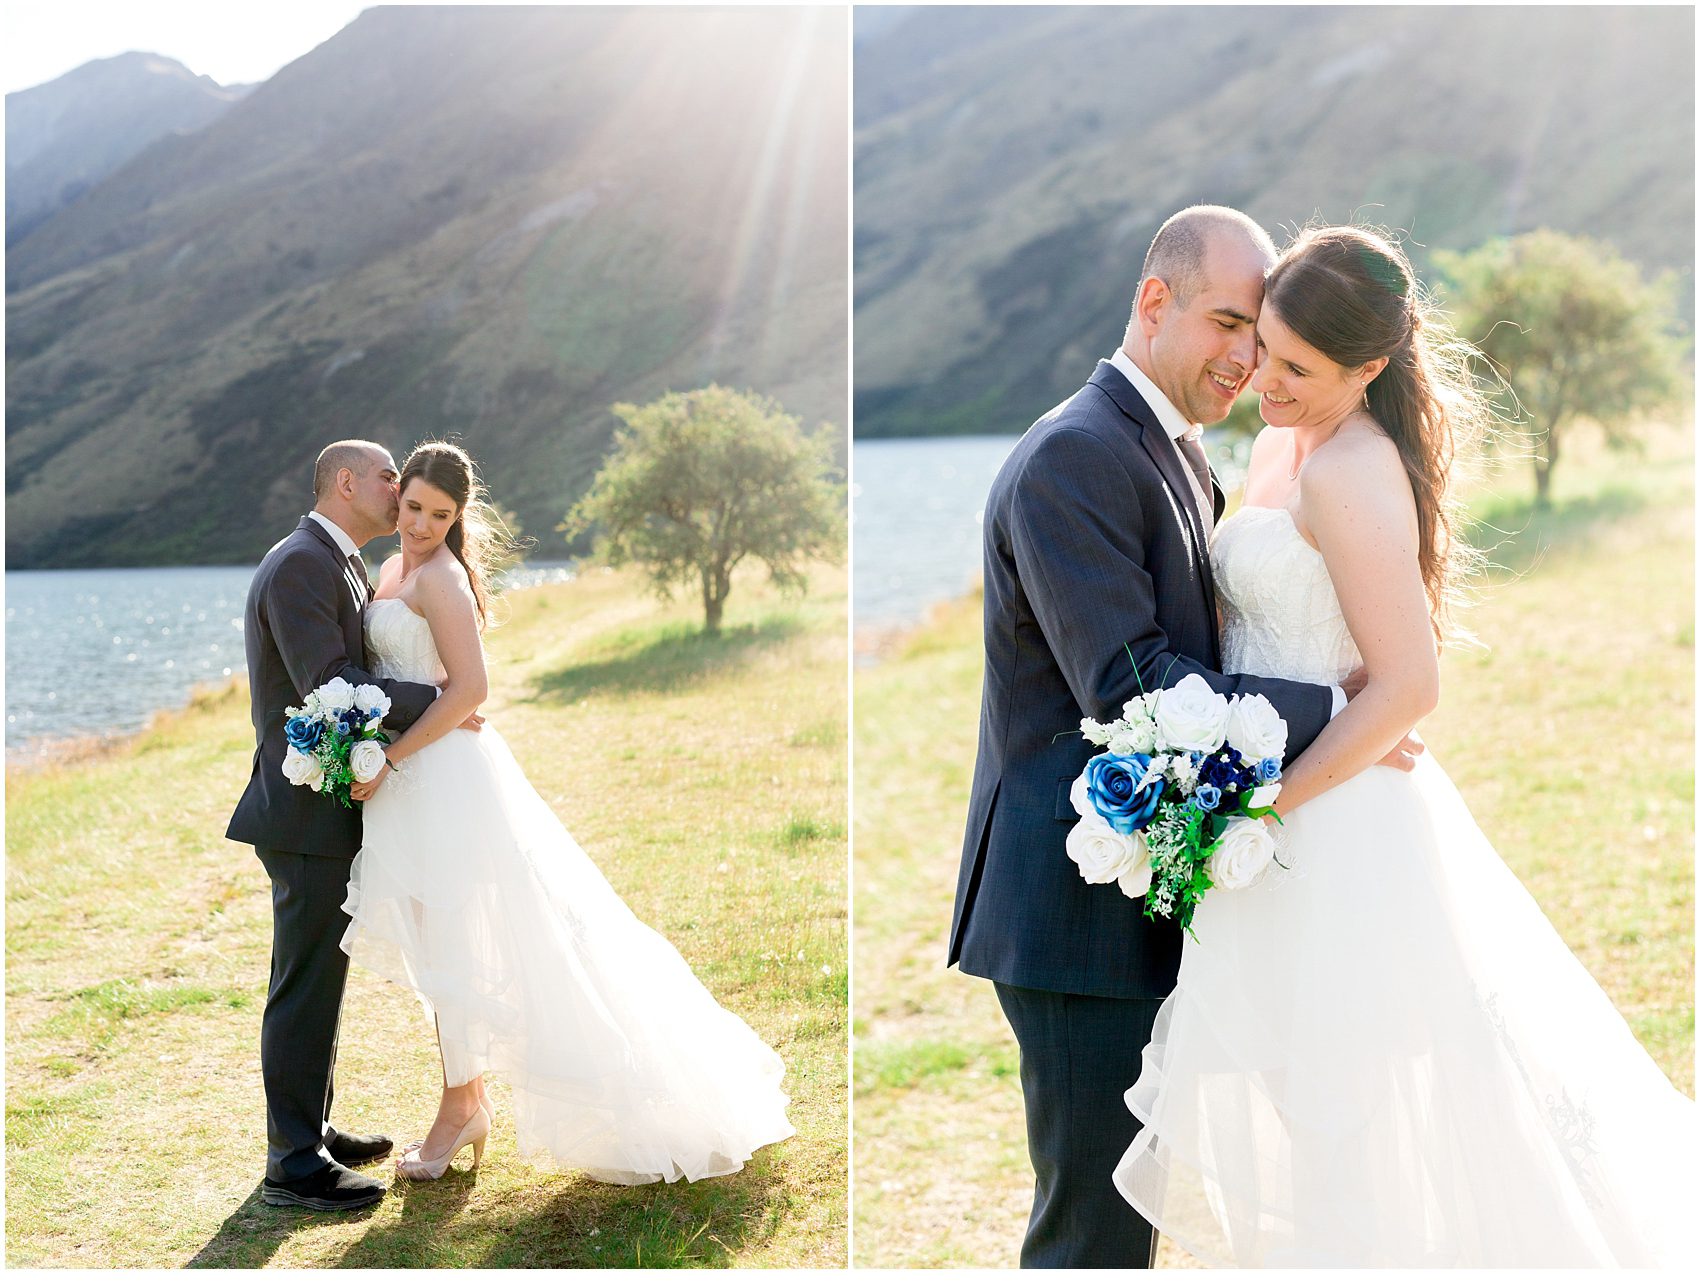 Queenstown New Zealand Wedding Photographer Bruna Fabricio Smetona Photo-0052.jpg